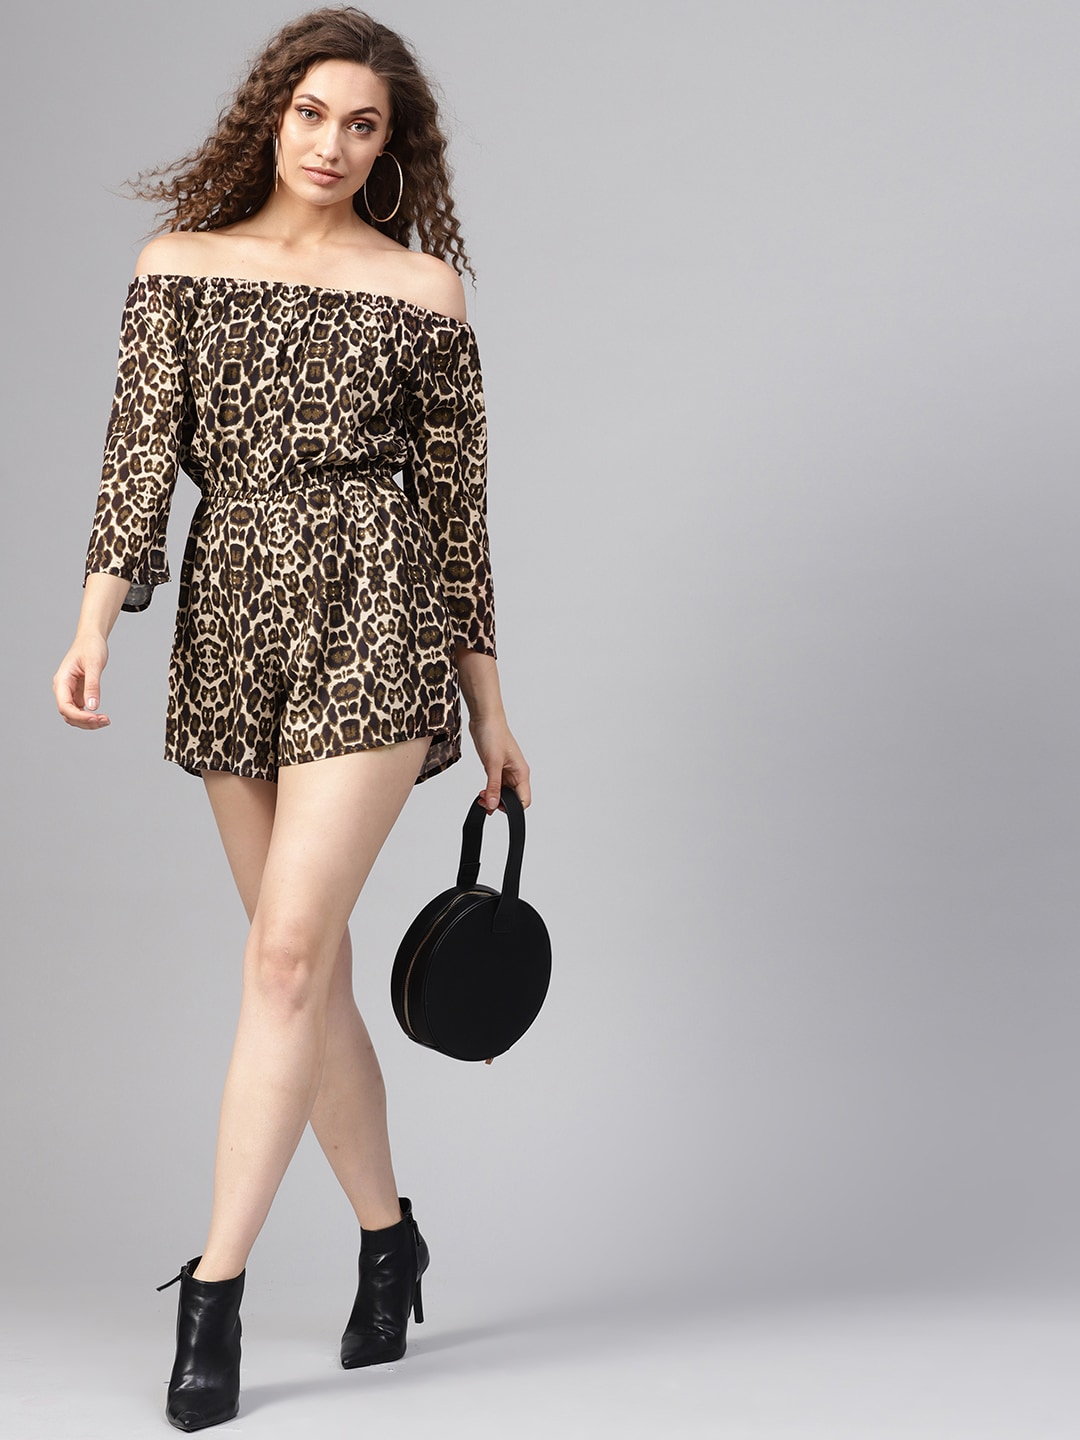 ec4adf1325 Playsuit For Women - Buy Playsuit For Women online in India